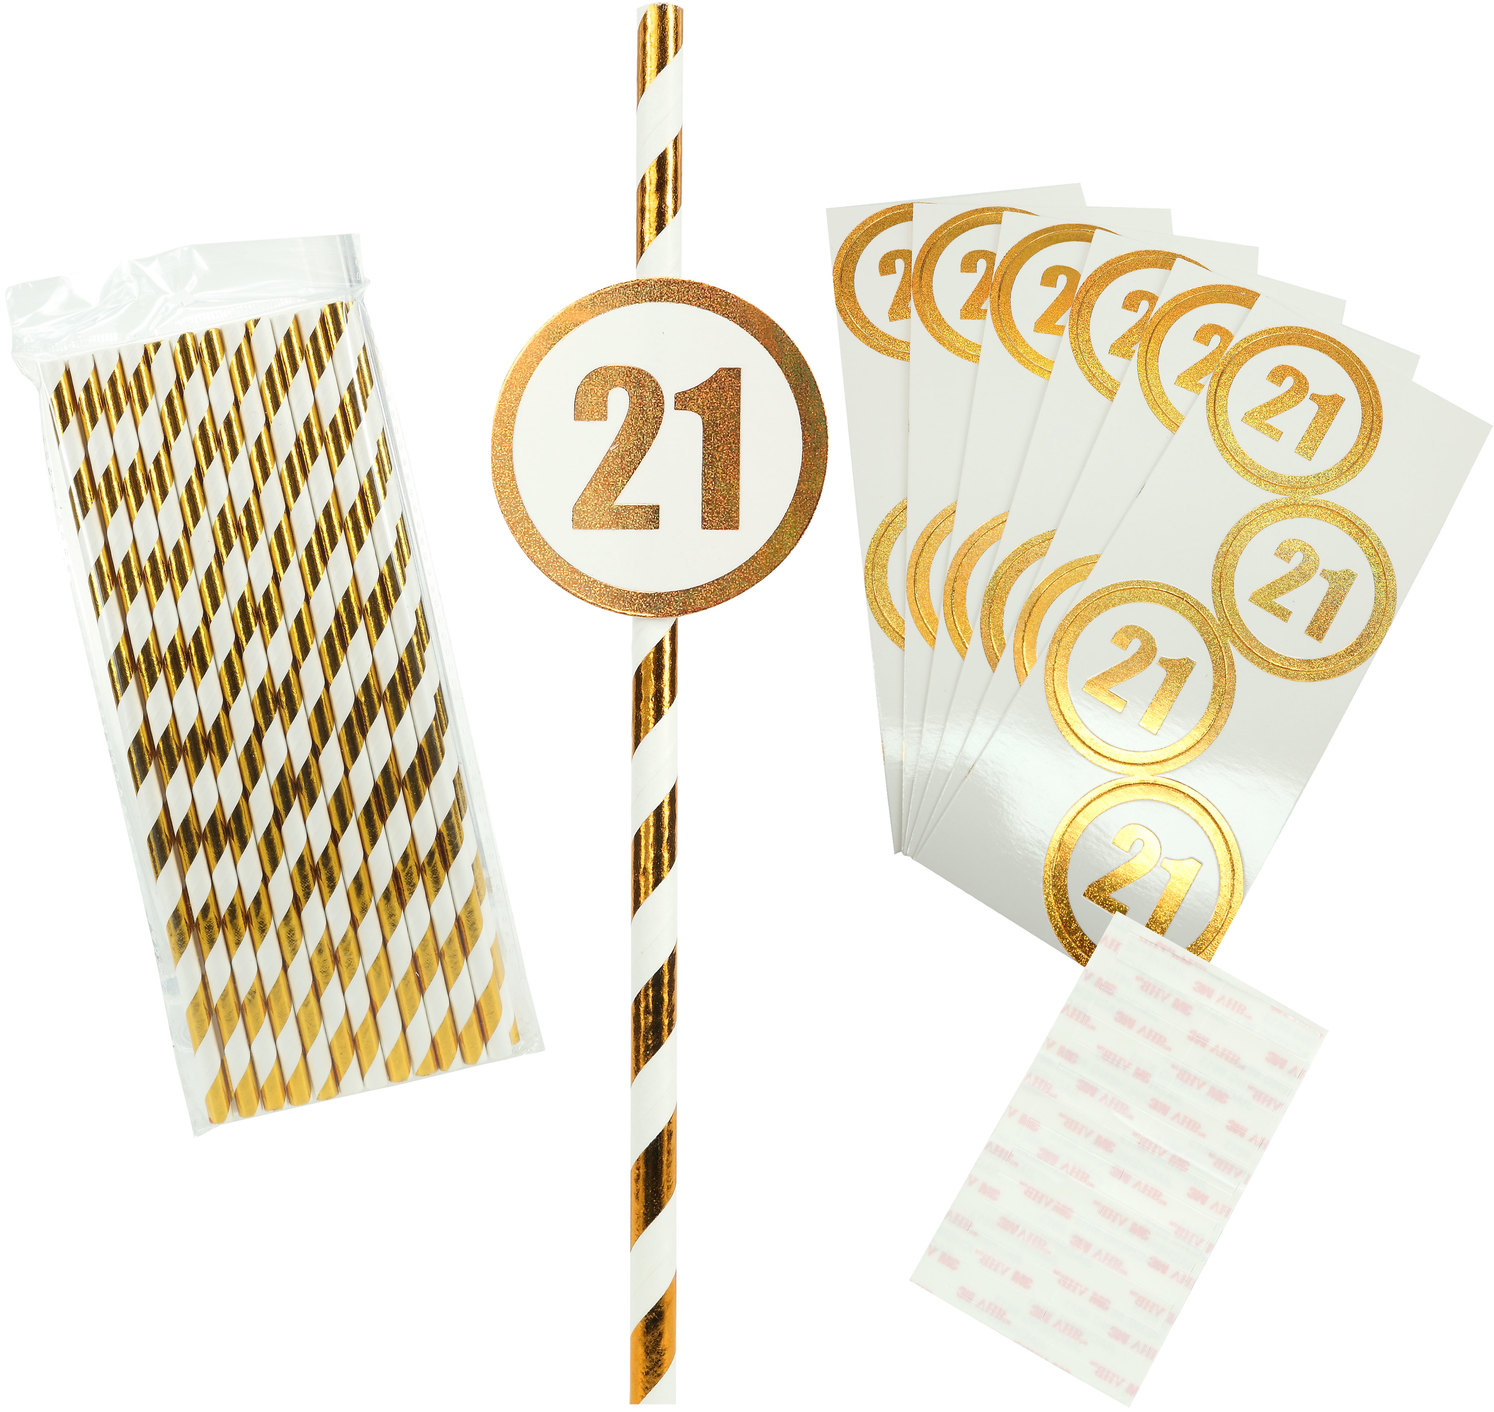 21 by Salty Celebration - 21 - 24 Pack Party Straws